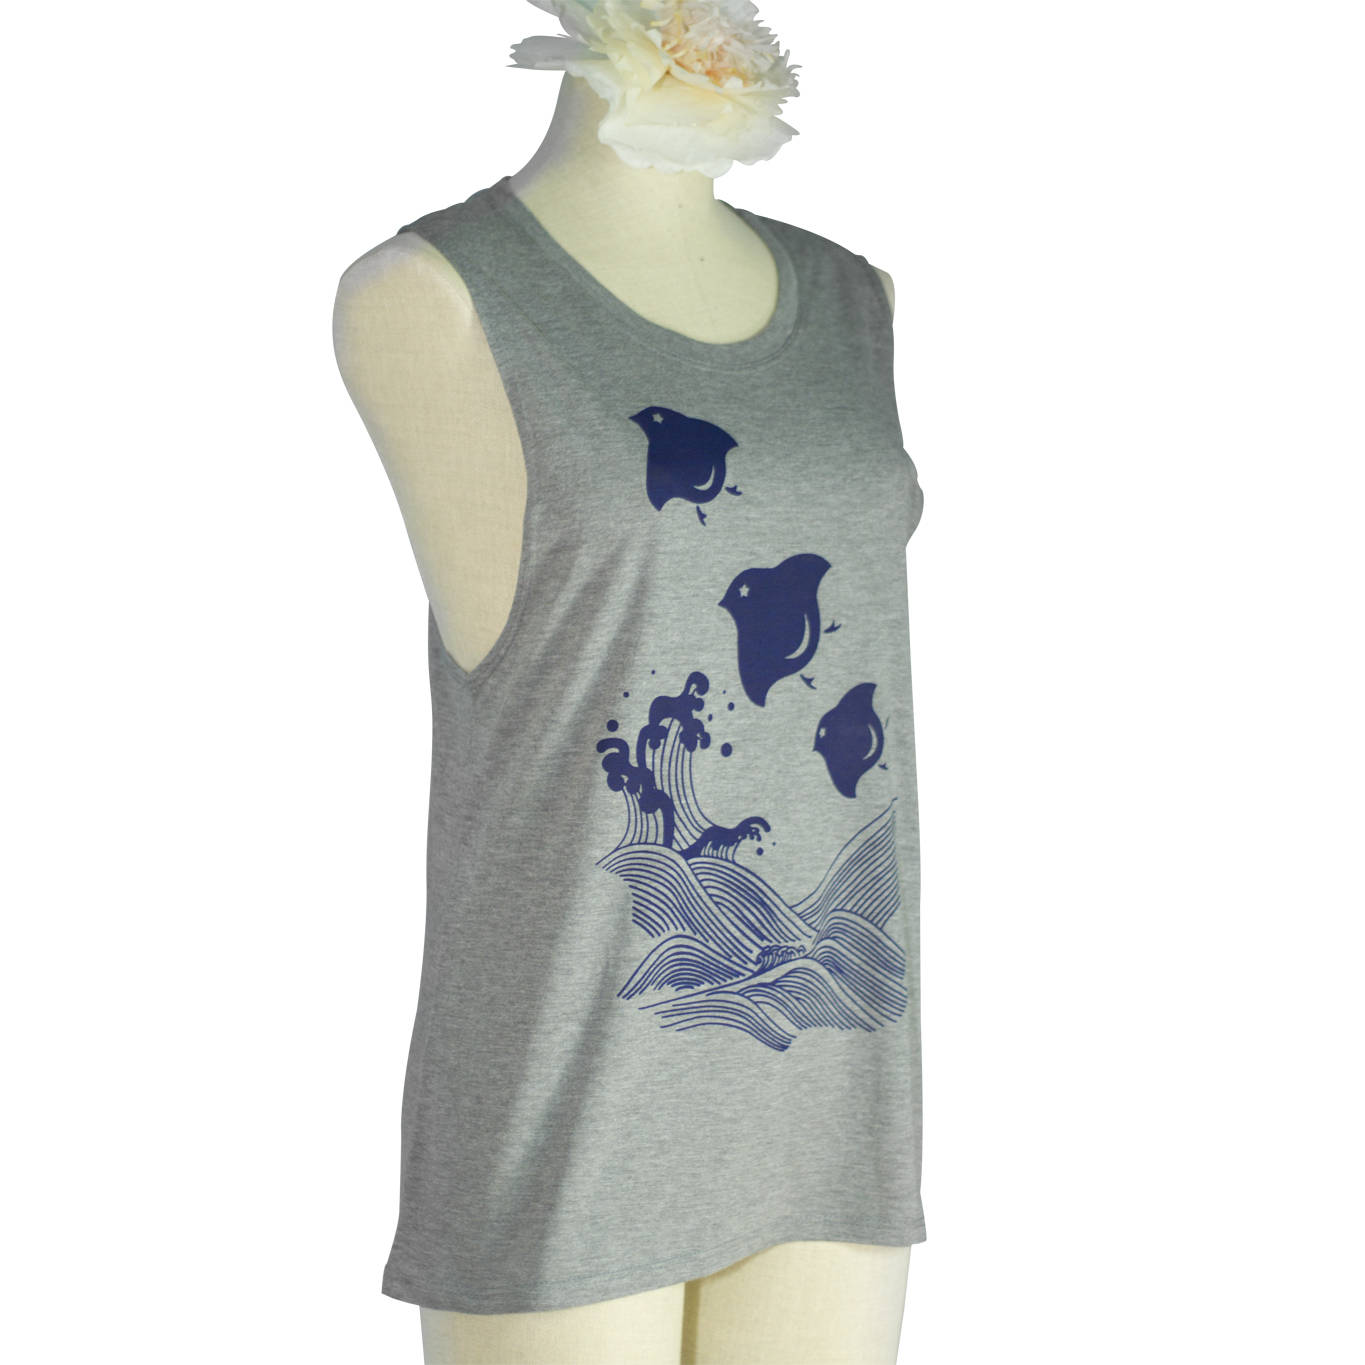 Heather Grey Japanese Chidori Birds Organic Bamboo Muscle Shirt - Yay for Fidget Art!